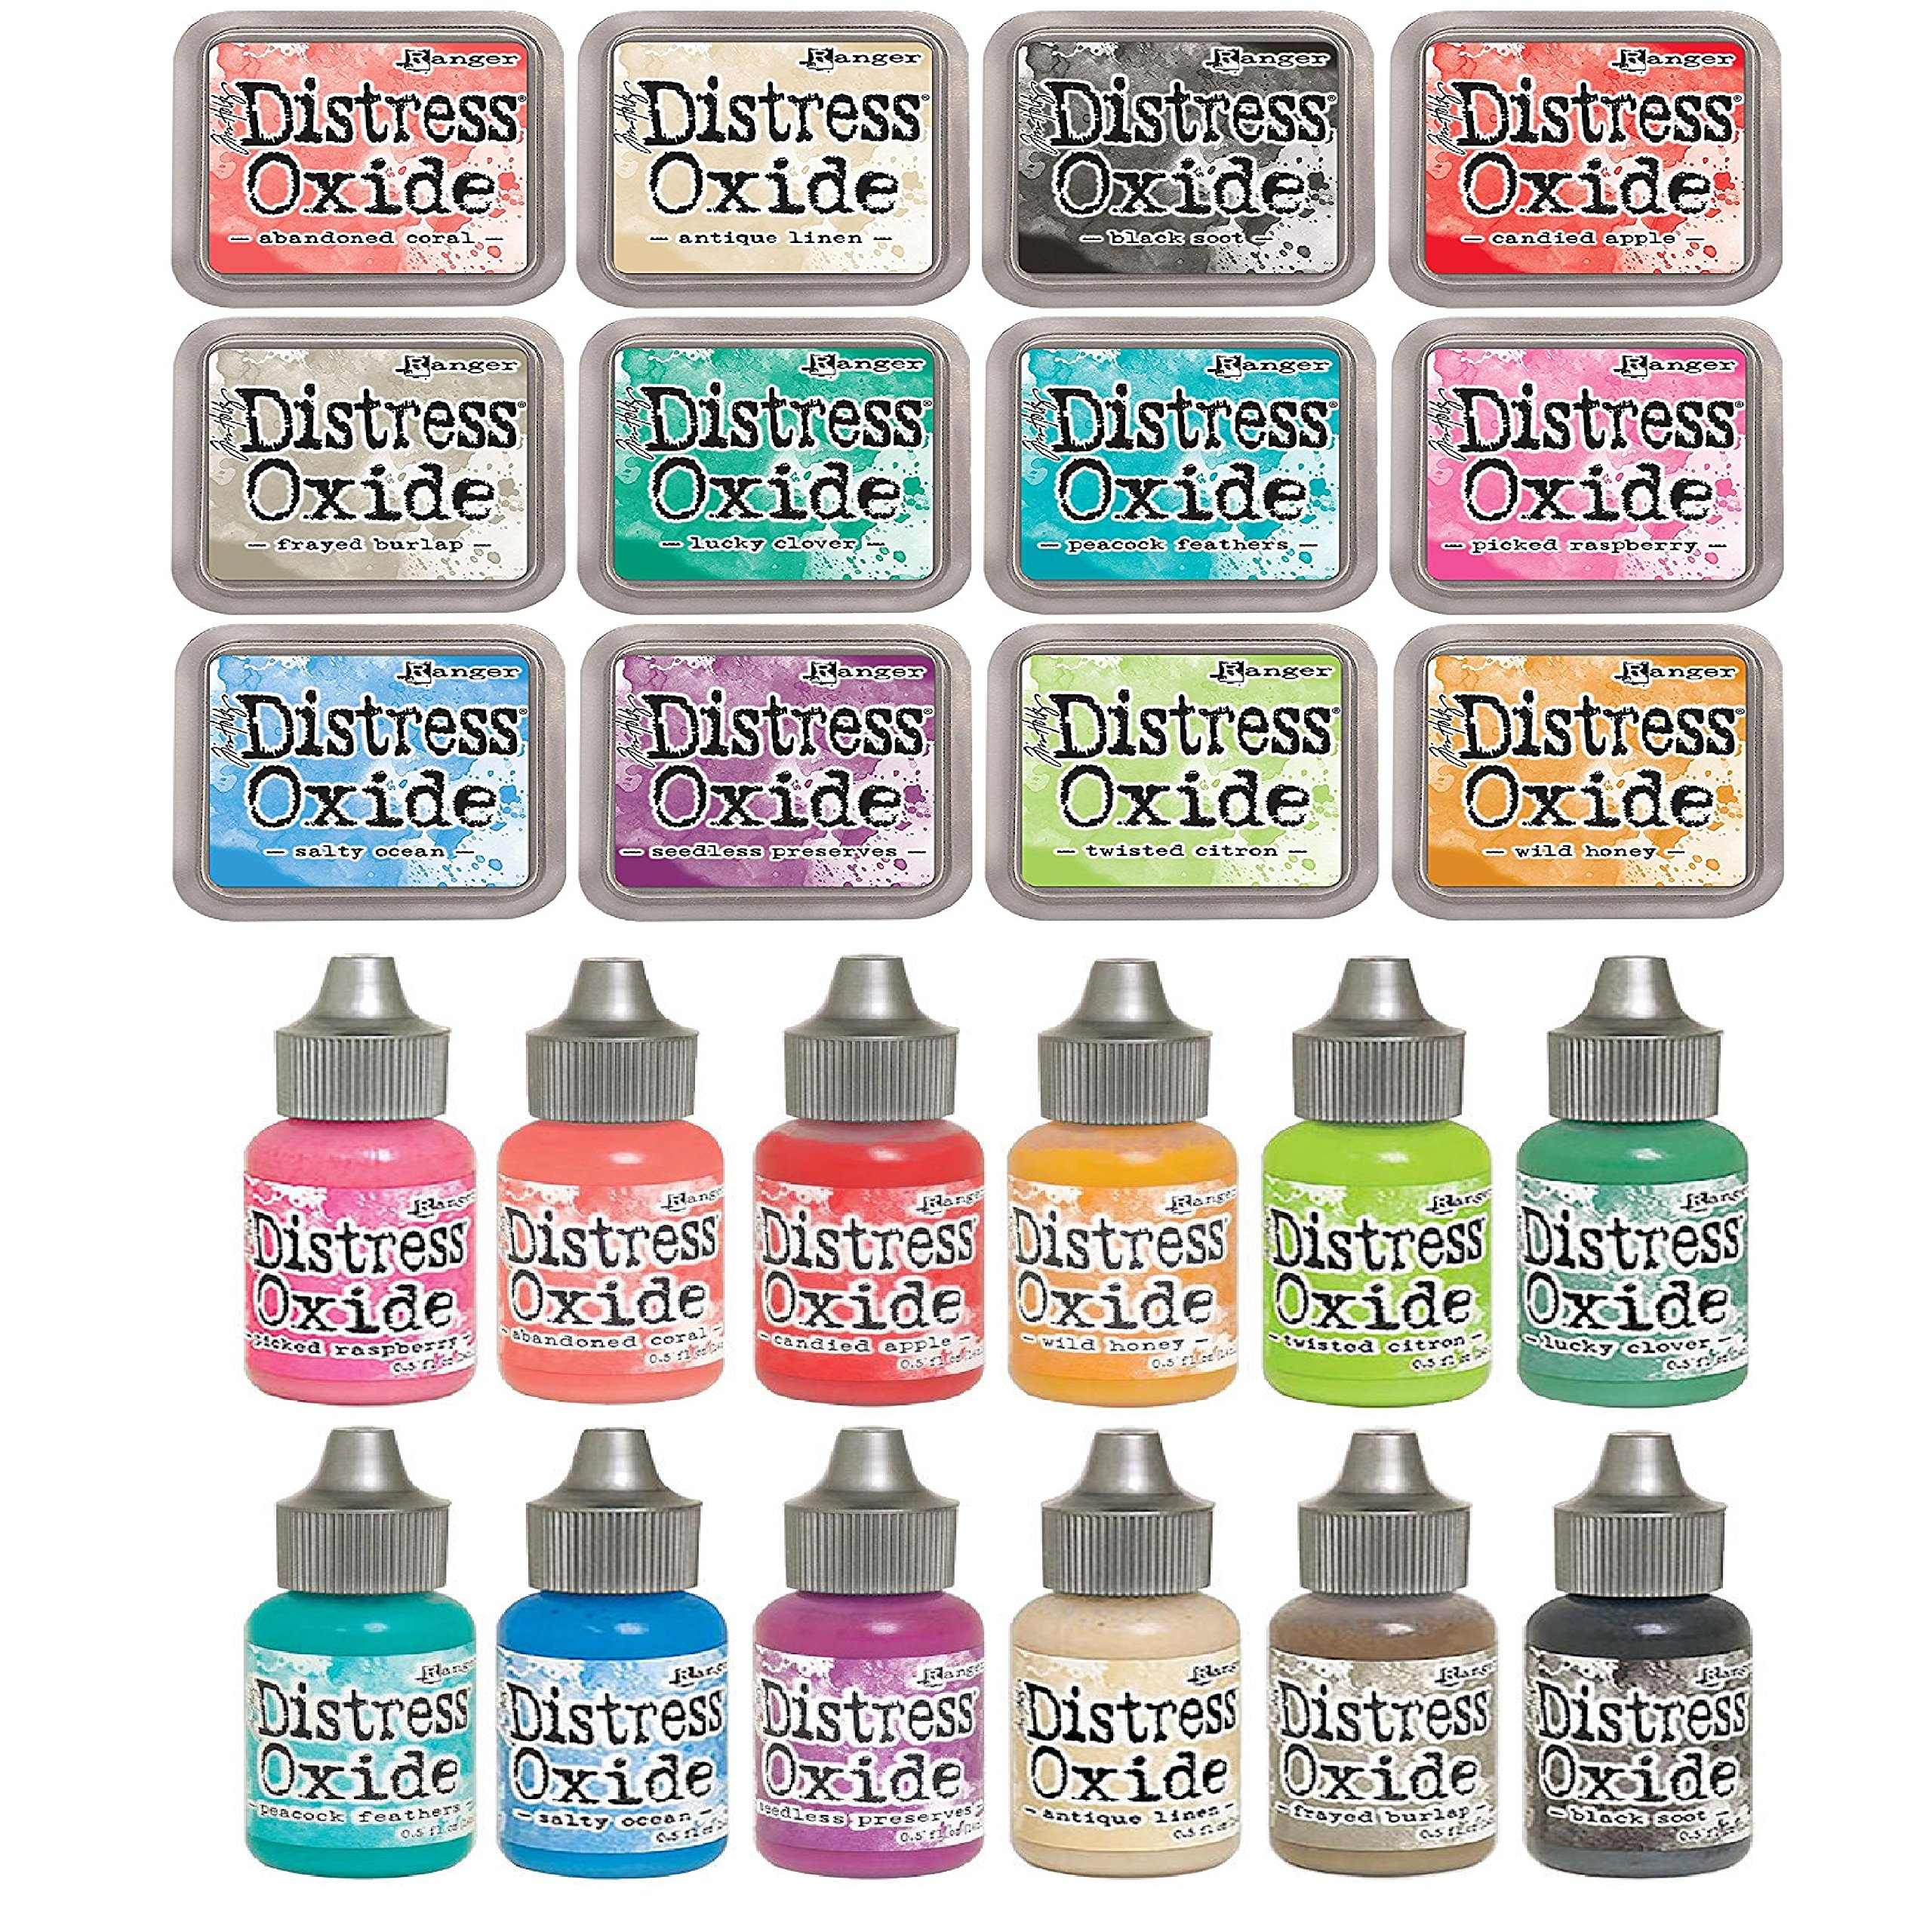 Tim Holtz Distress OXIDE Ink Pads AND Reinkers Set in All 12 Colors Set #2 by Ranger (Summer 2017 Release)